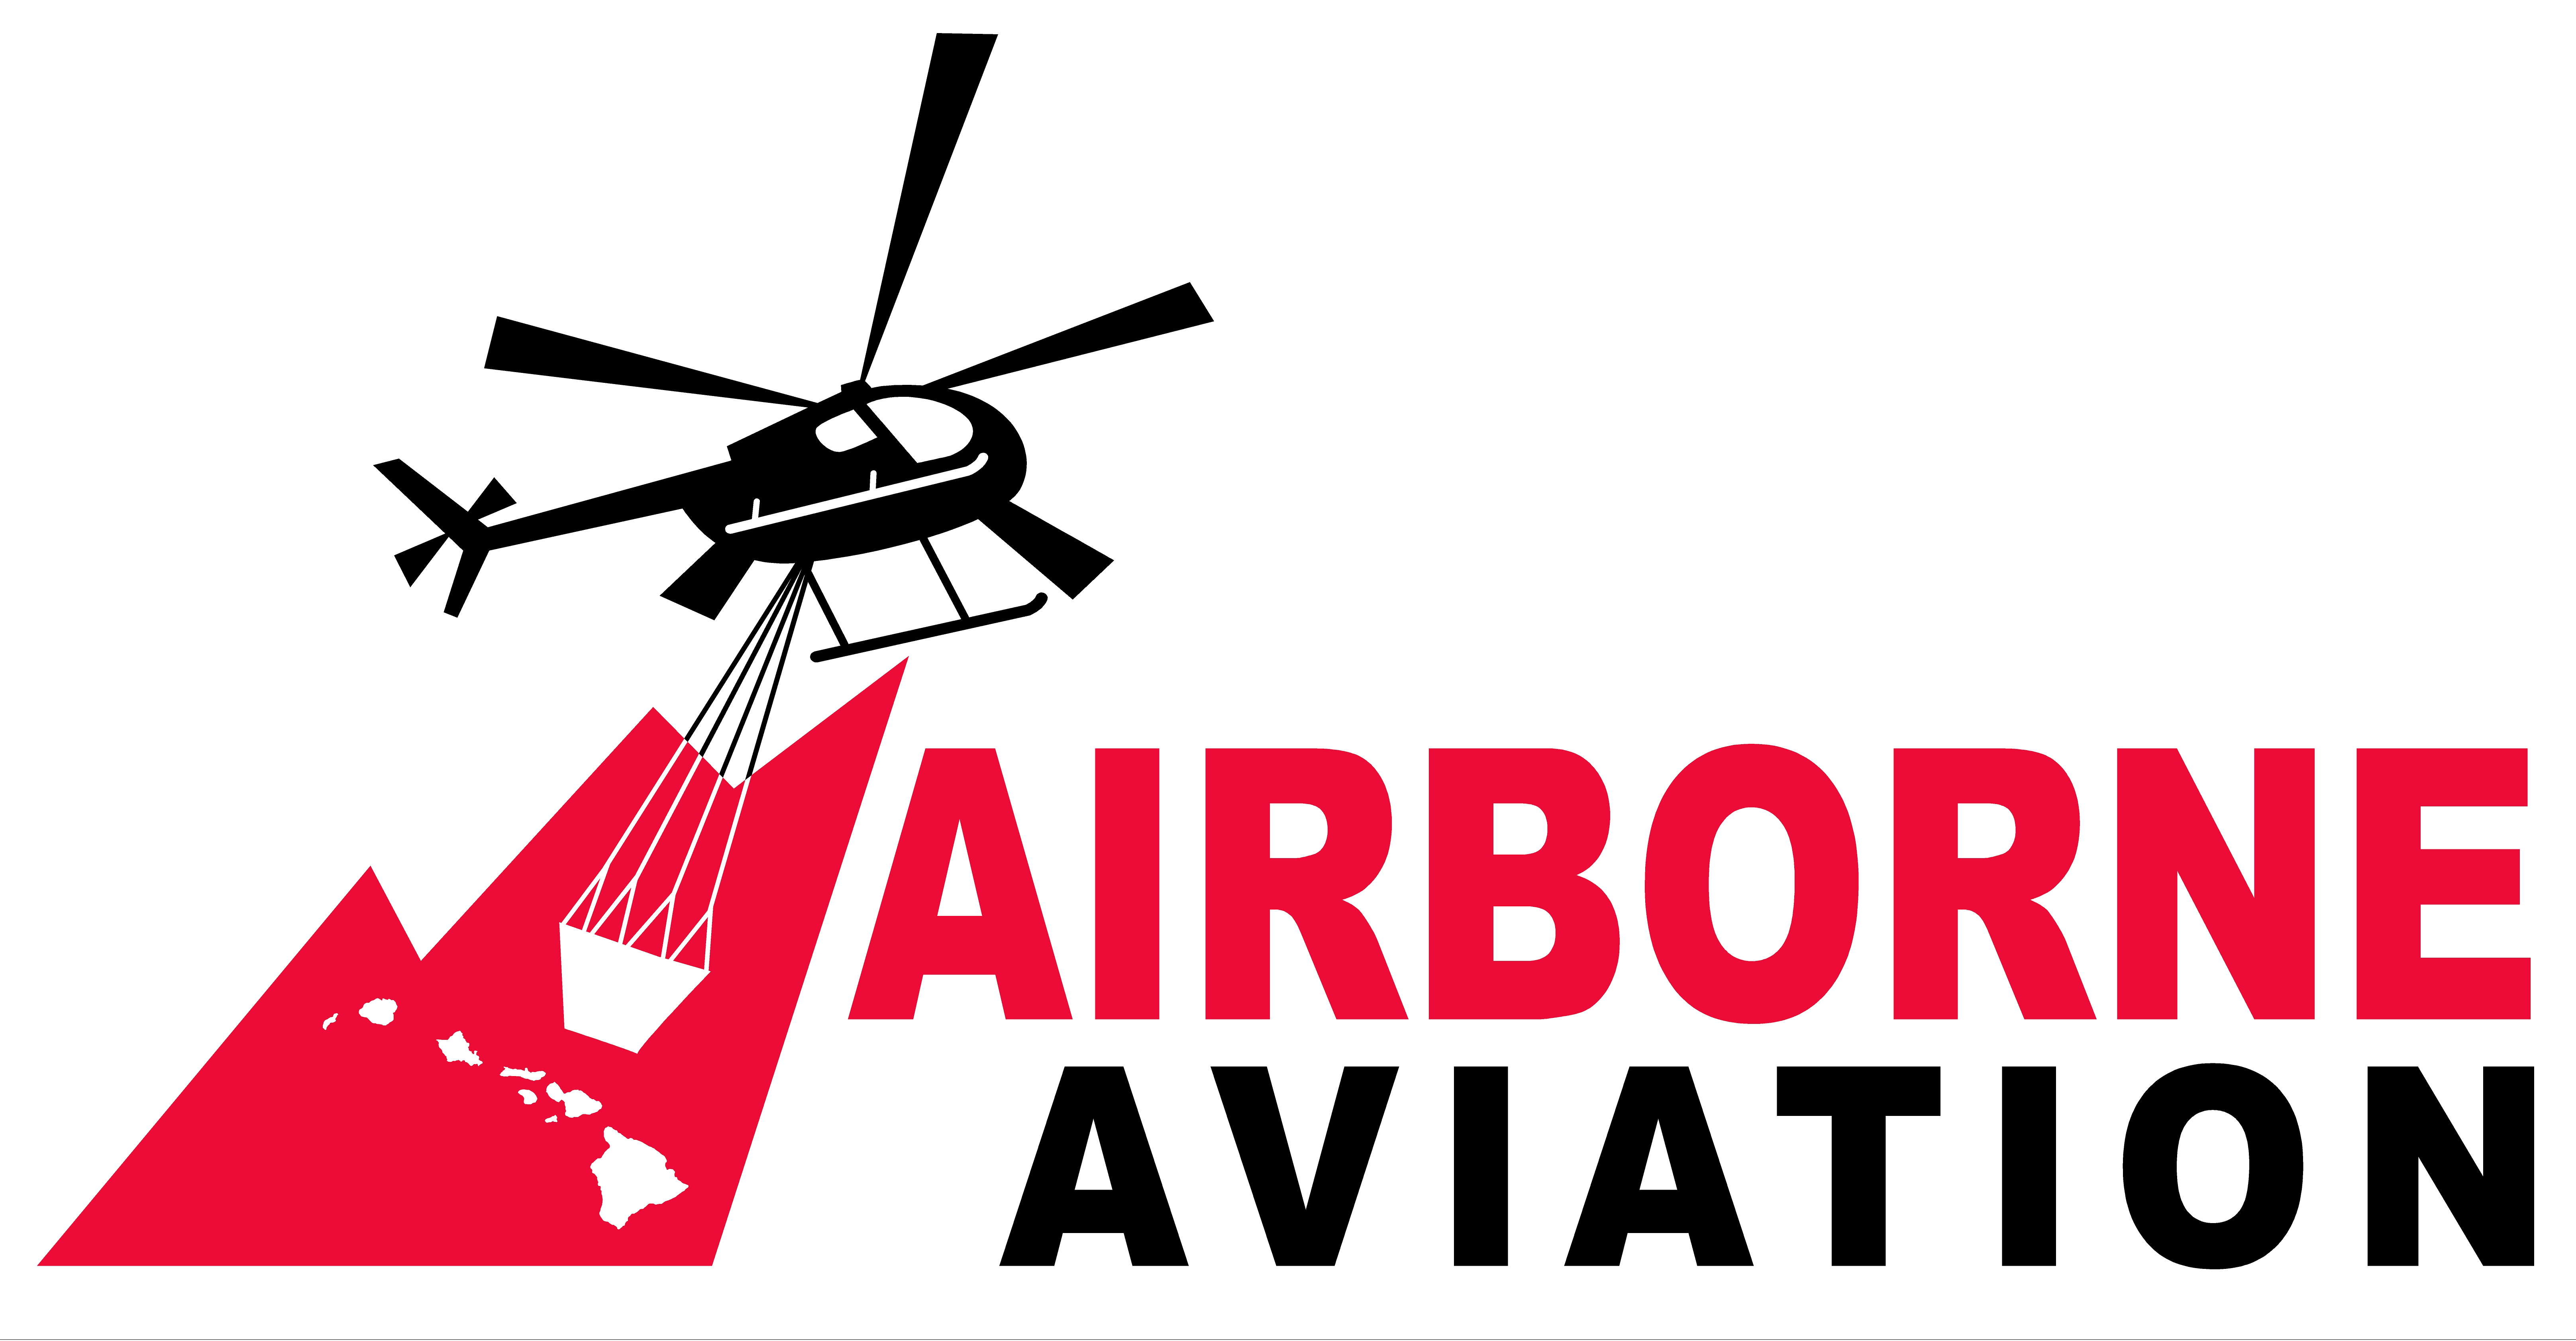 Airborne Aviation Utility | Helicopter Utility Company